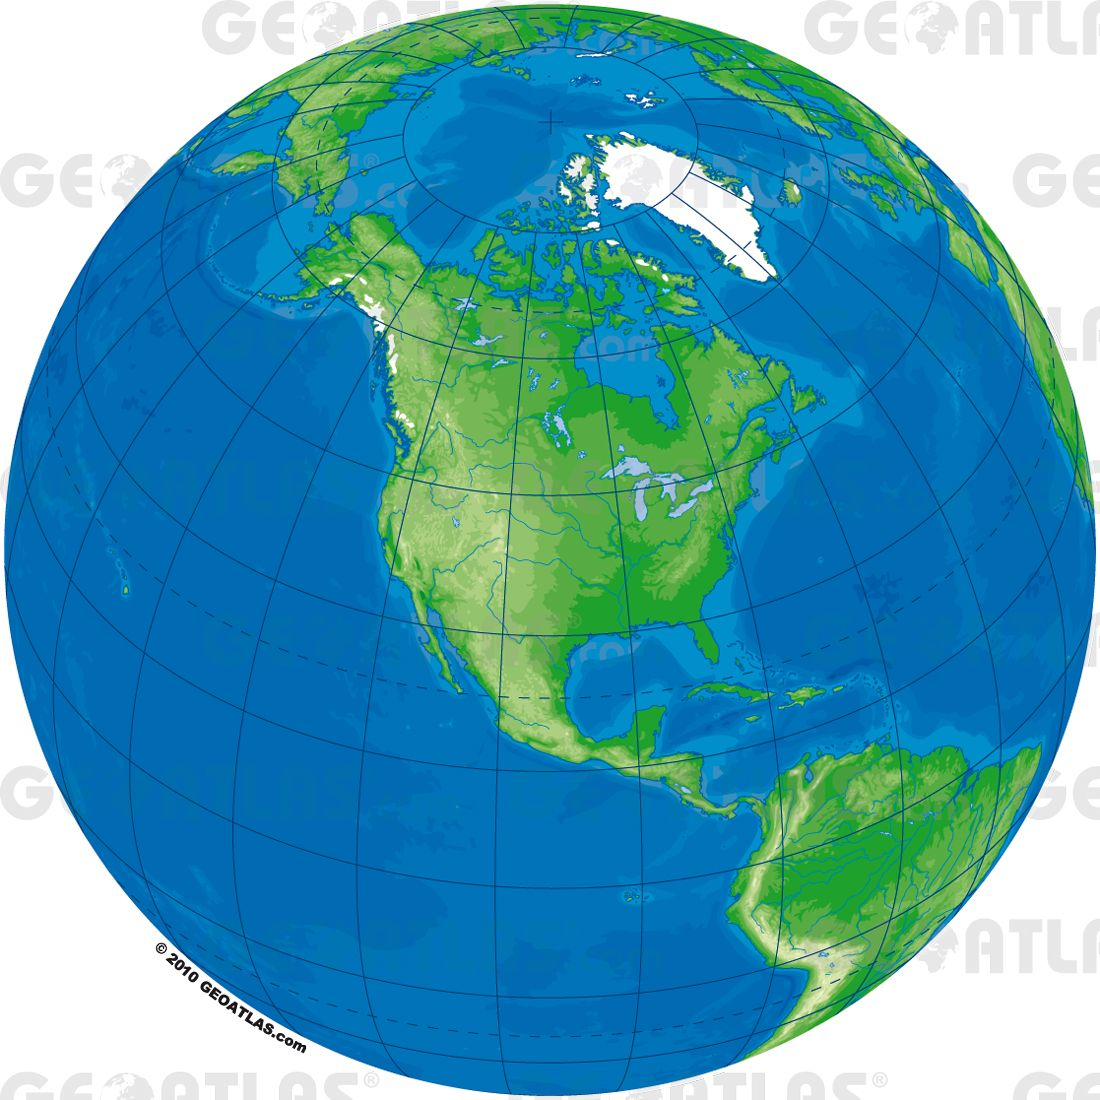 World map globe google search dads 80th birthday party world map globe google search gumiabroncs Choice Image